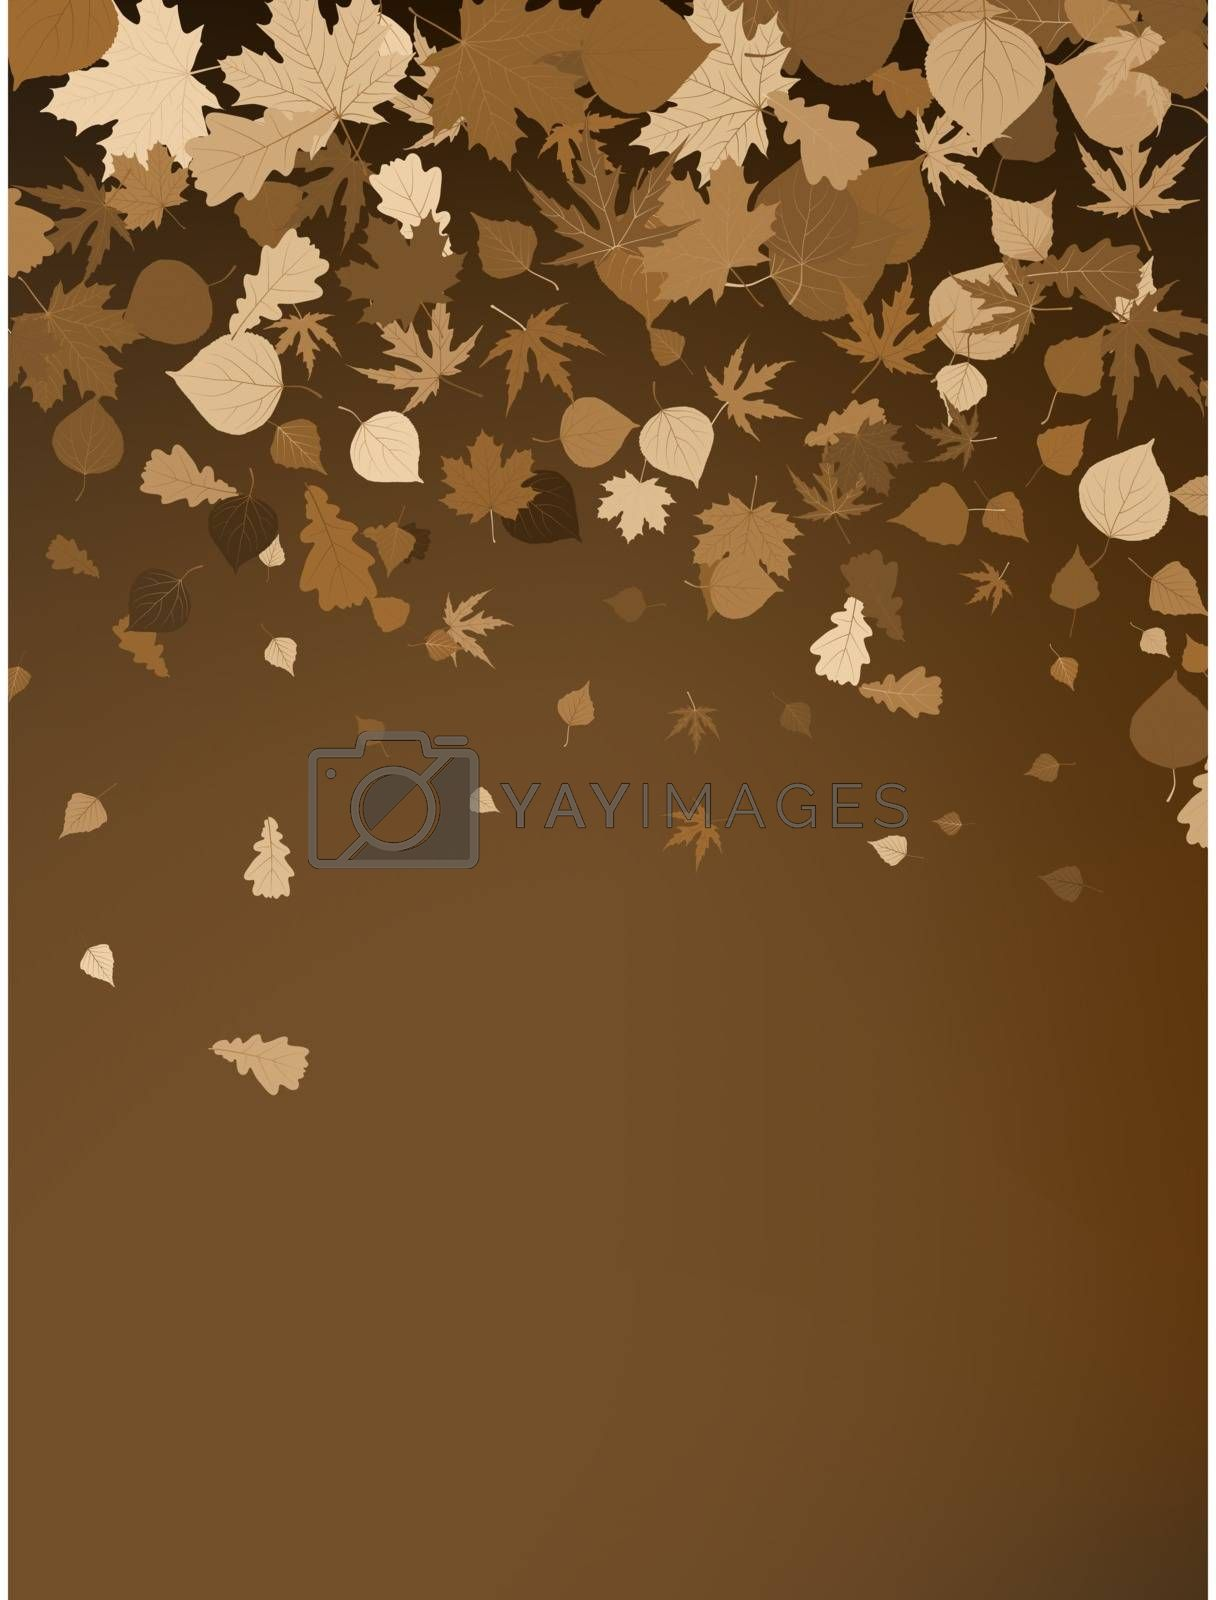 Brown autumnal design template. EPS 8 vector file included